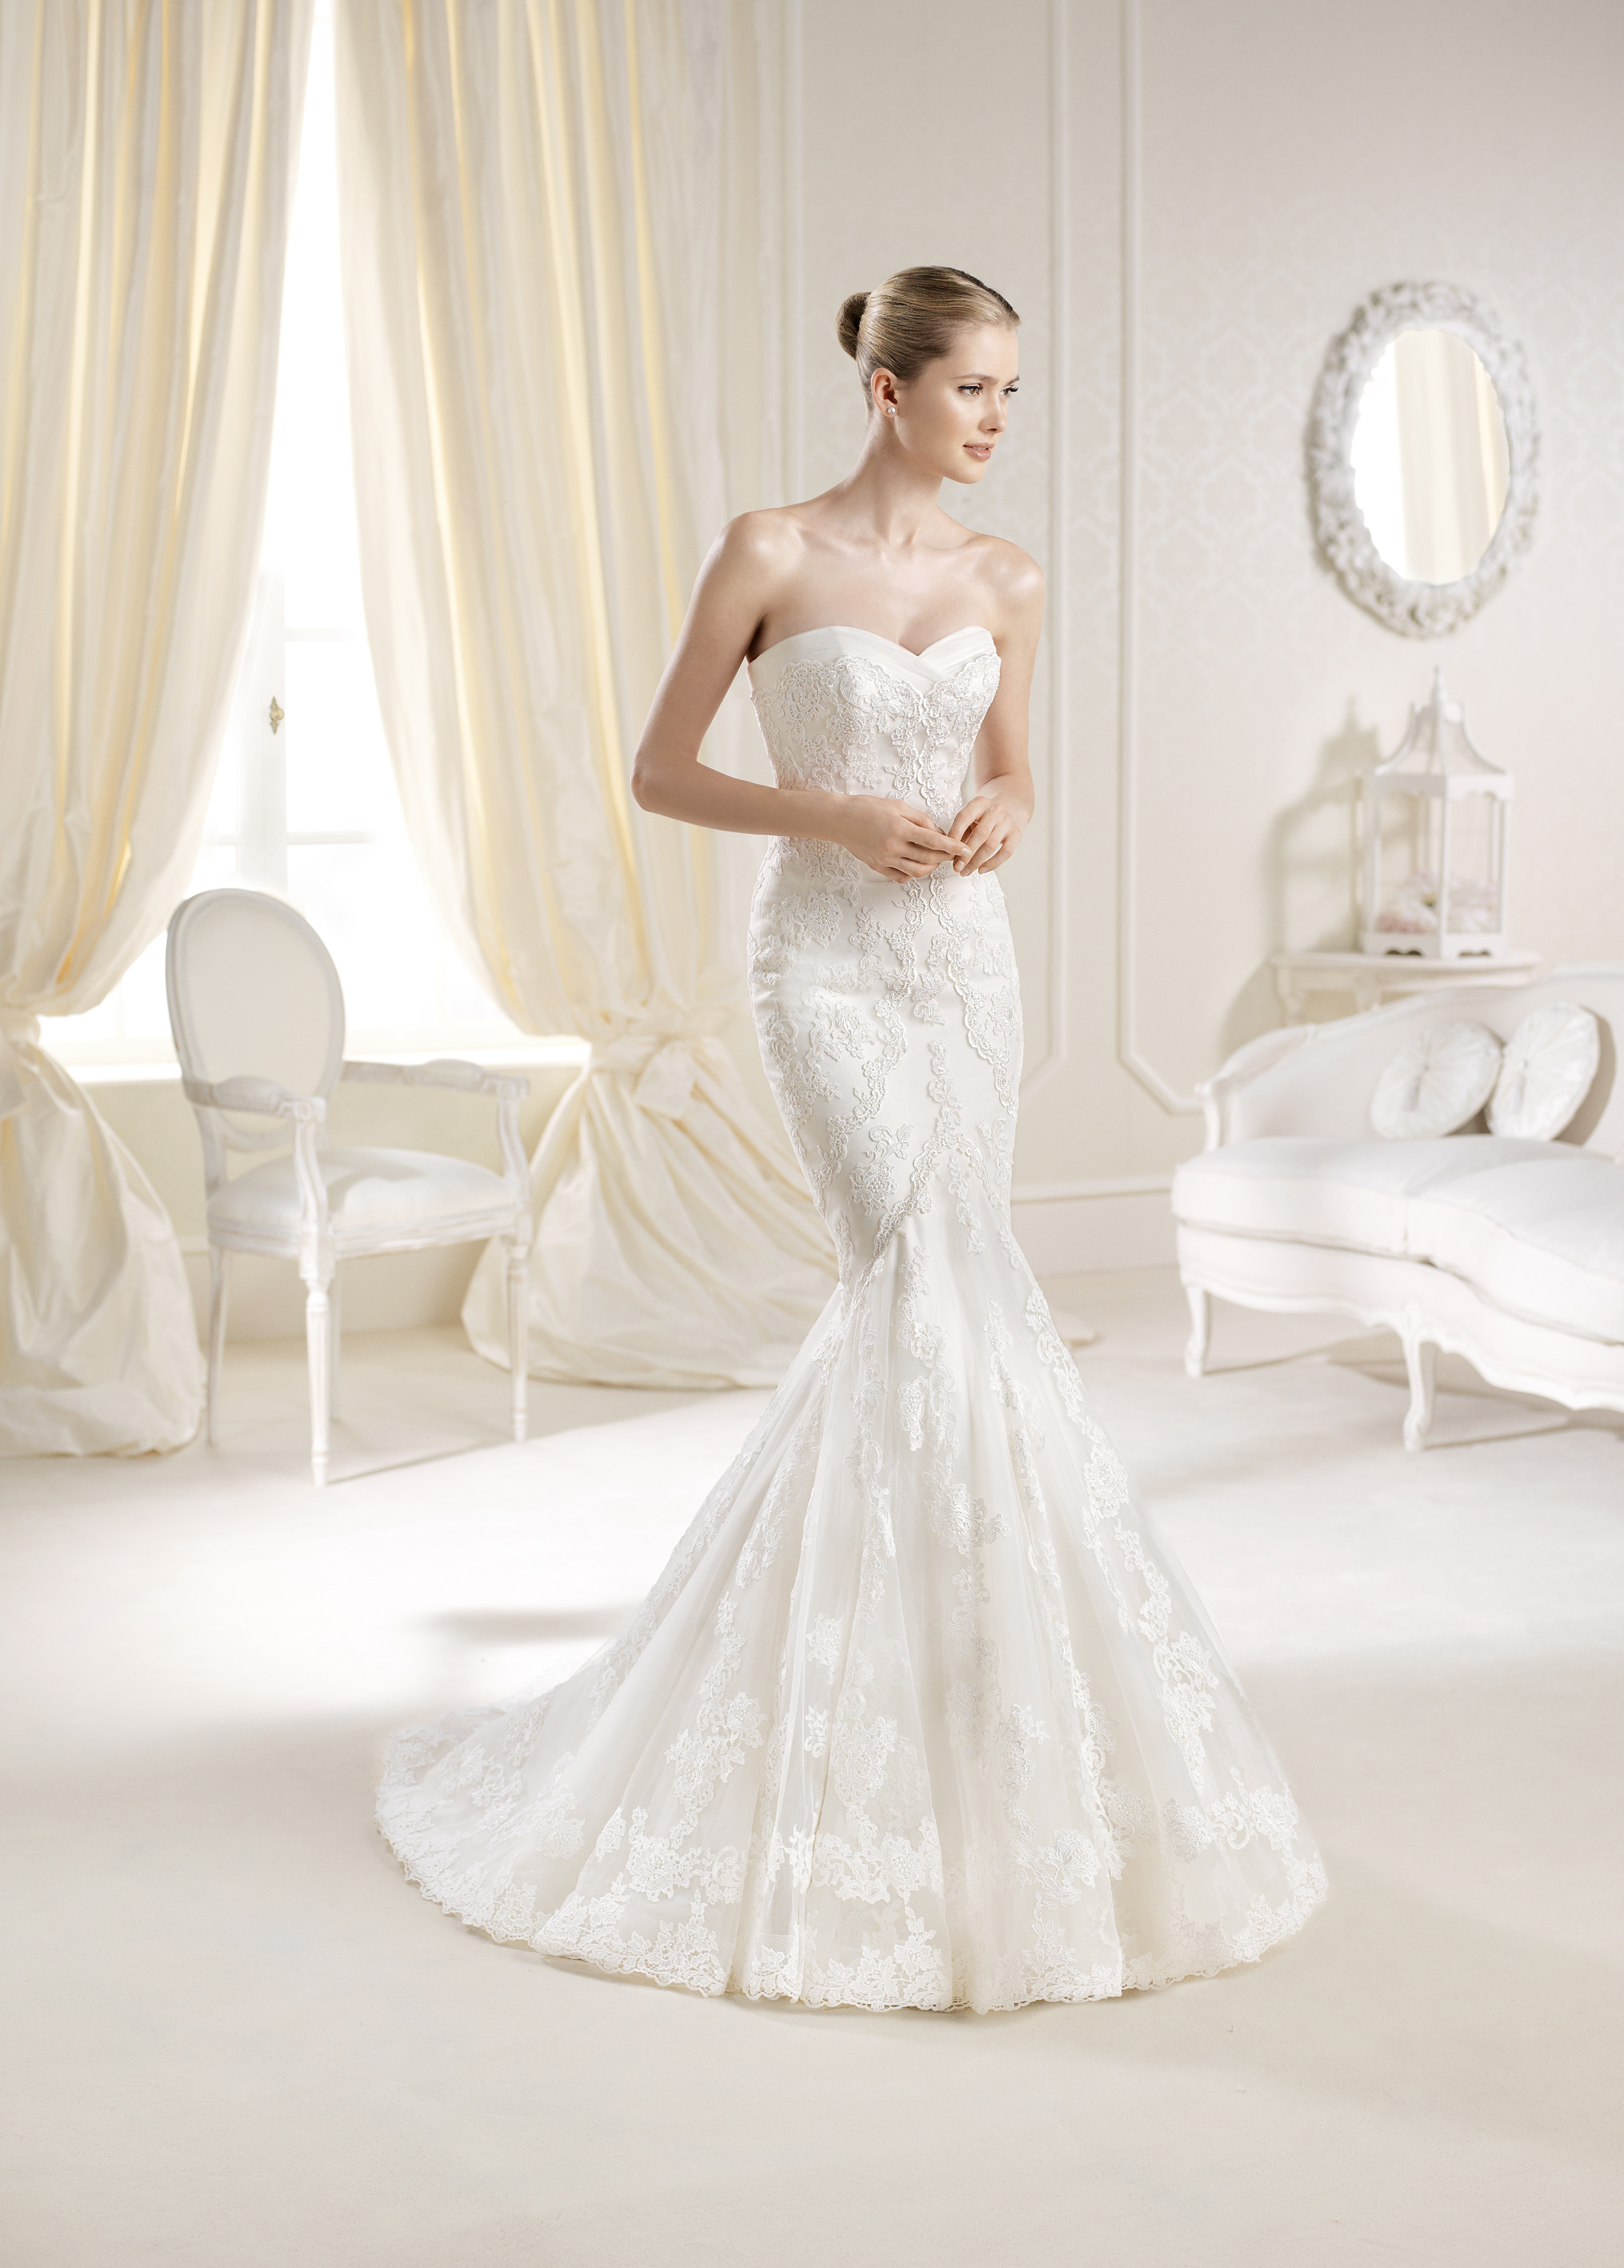 Mullet Moo Let By Lasposa From Pronovias Size 10 Sample In